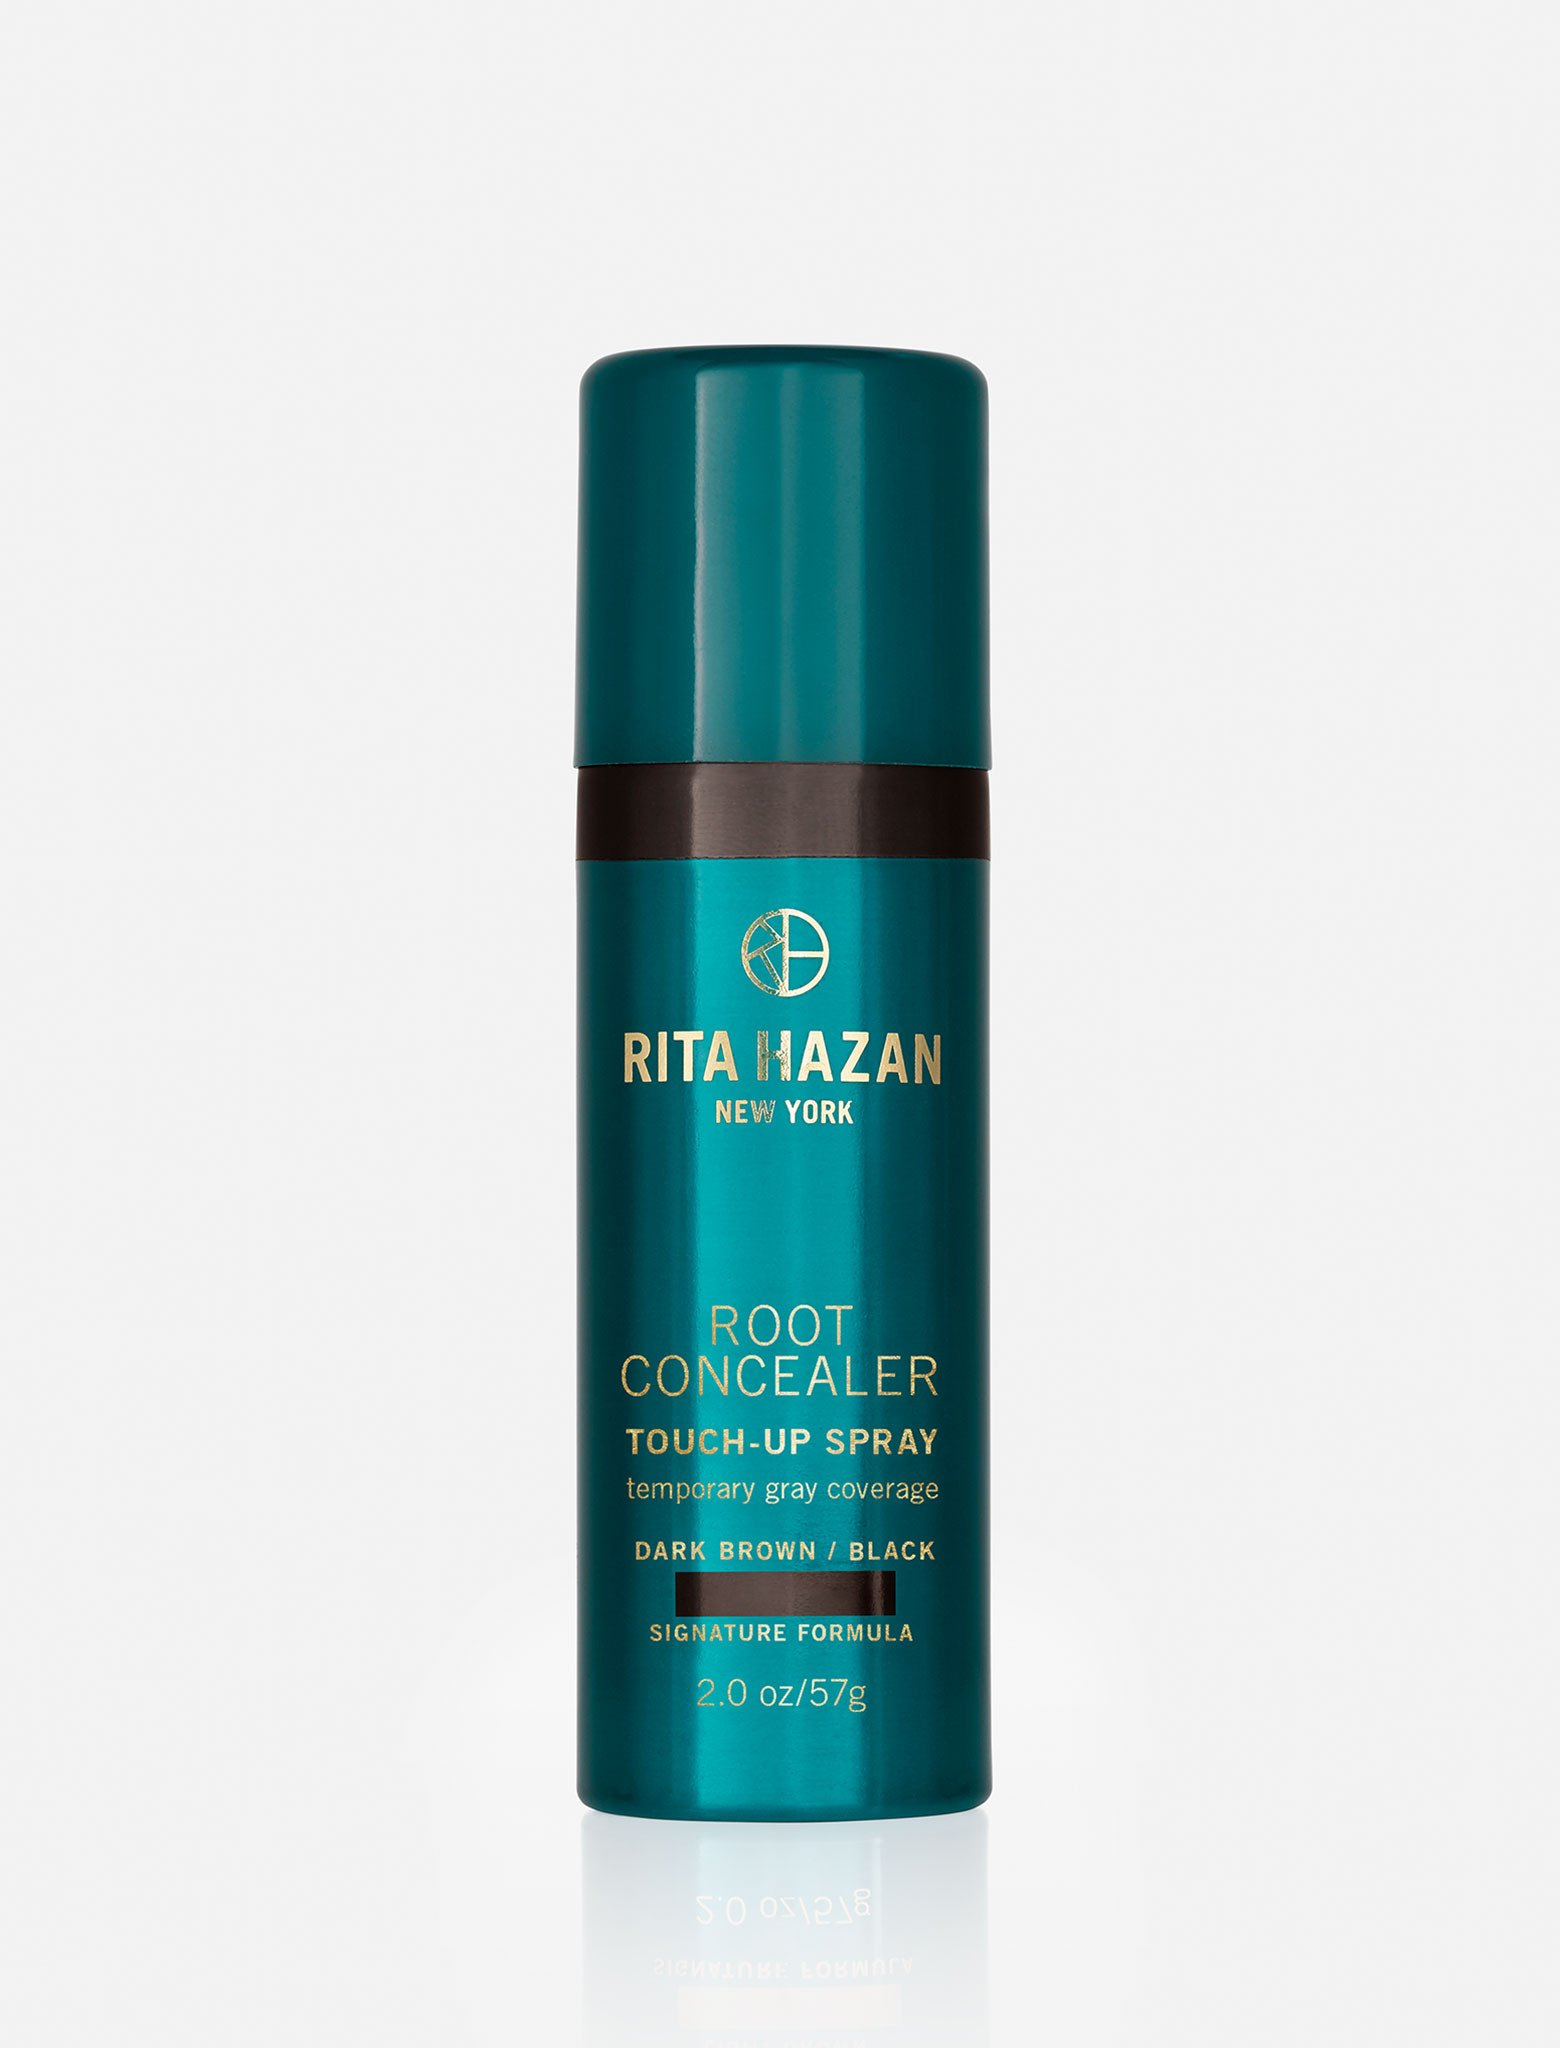 The best temporary gray coverage on the market: Rita Hazan Root Concealer Touch Up Spray.